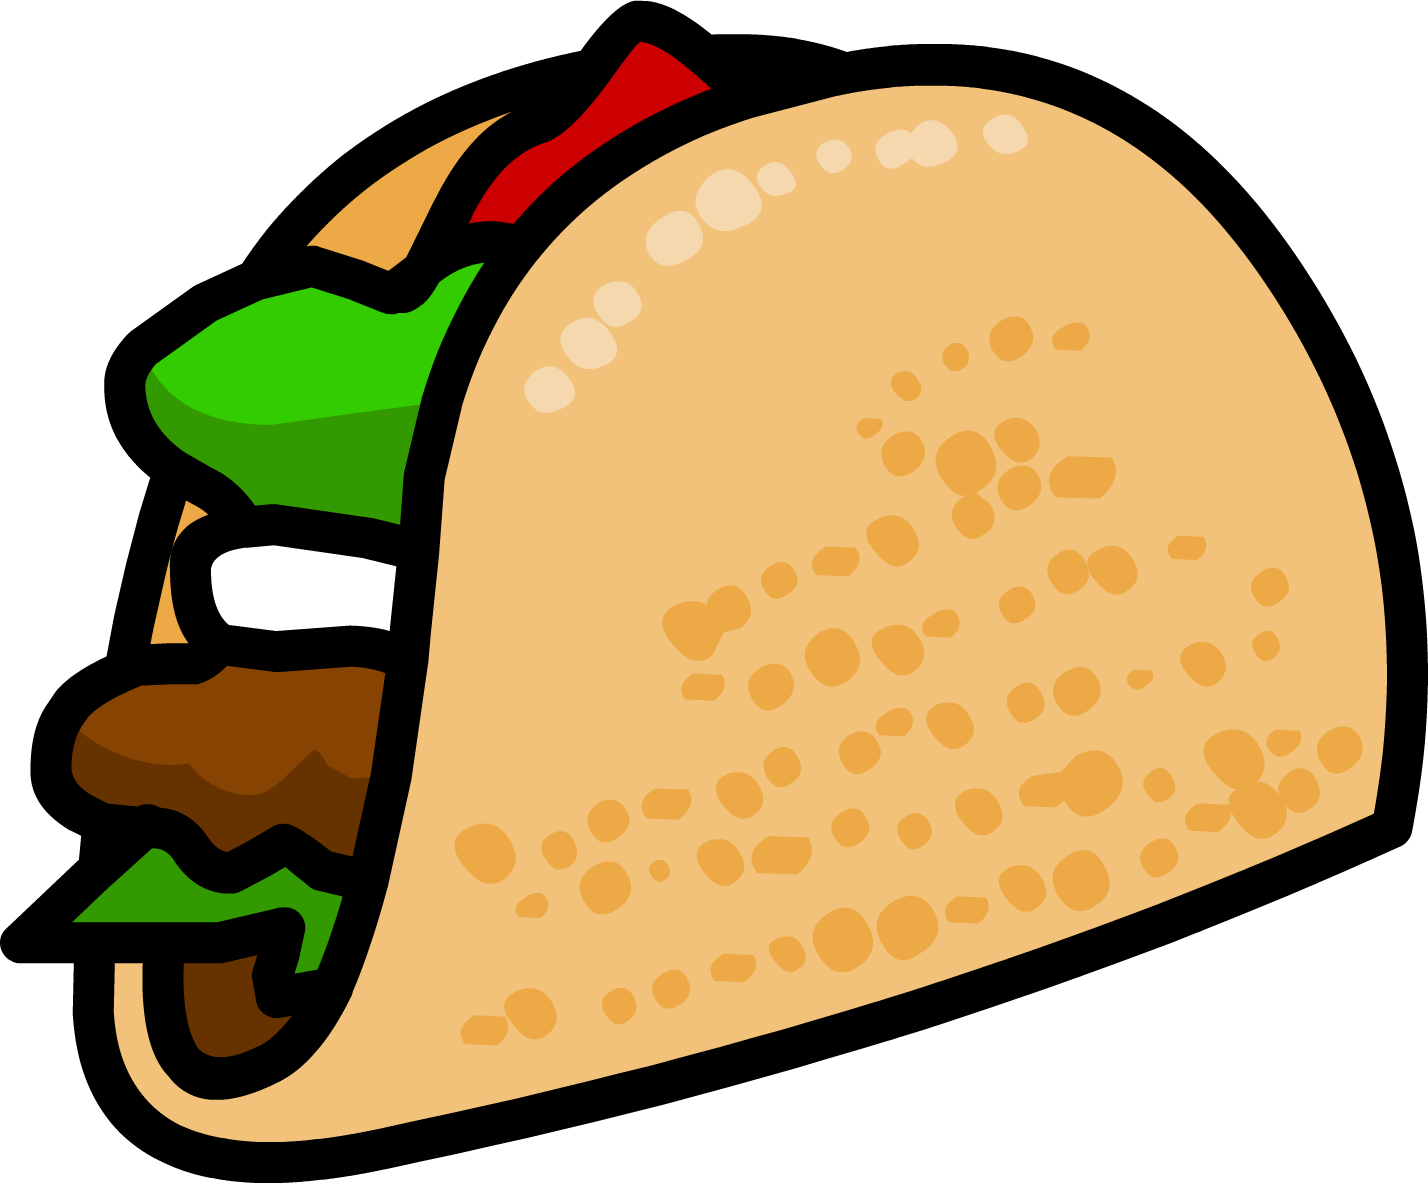 Clipart of the taco free image.